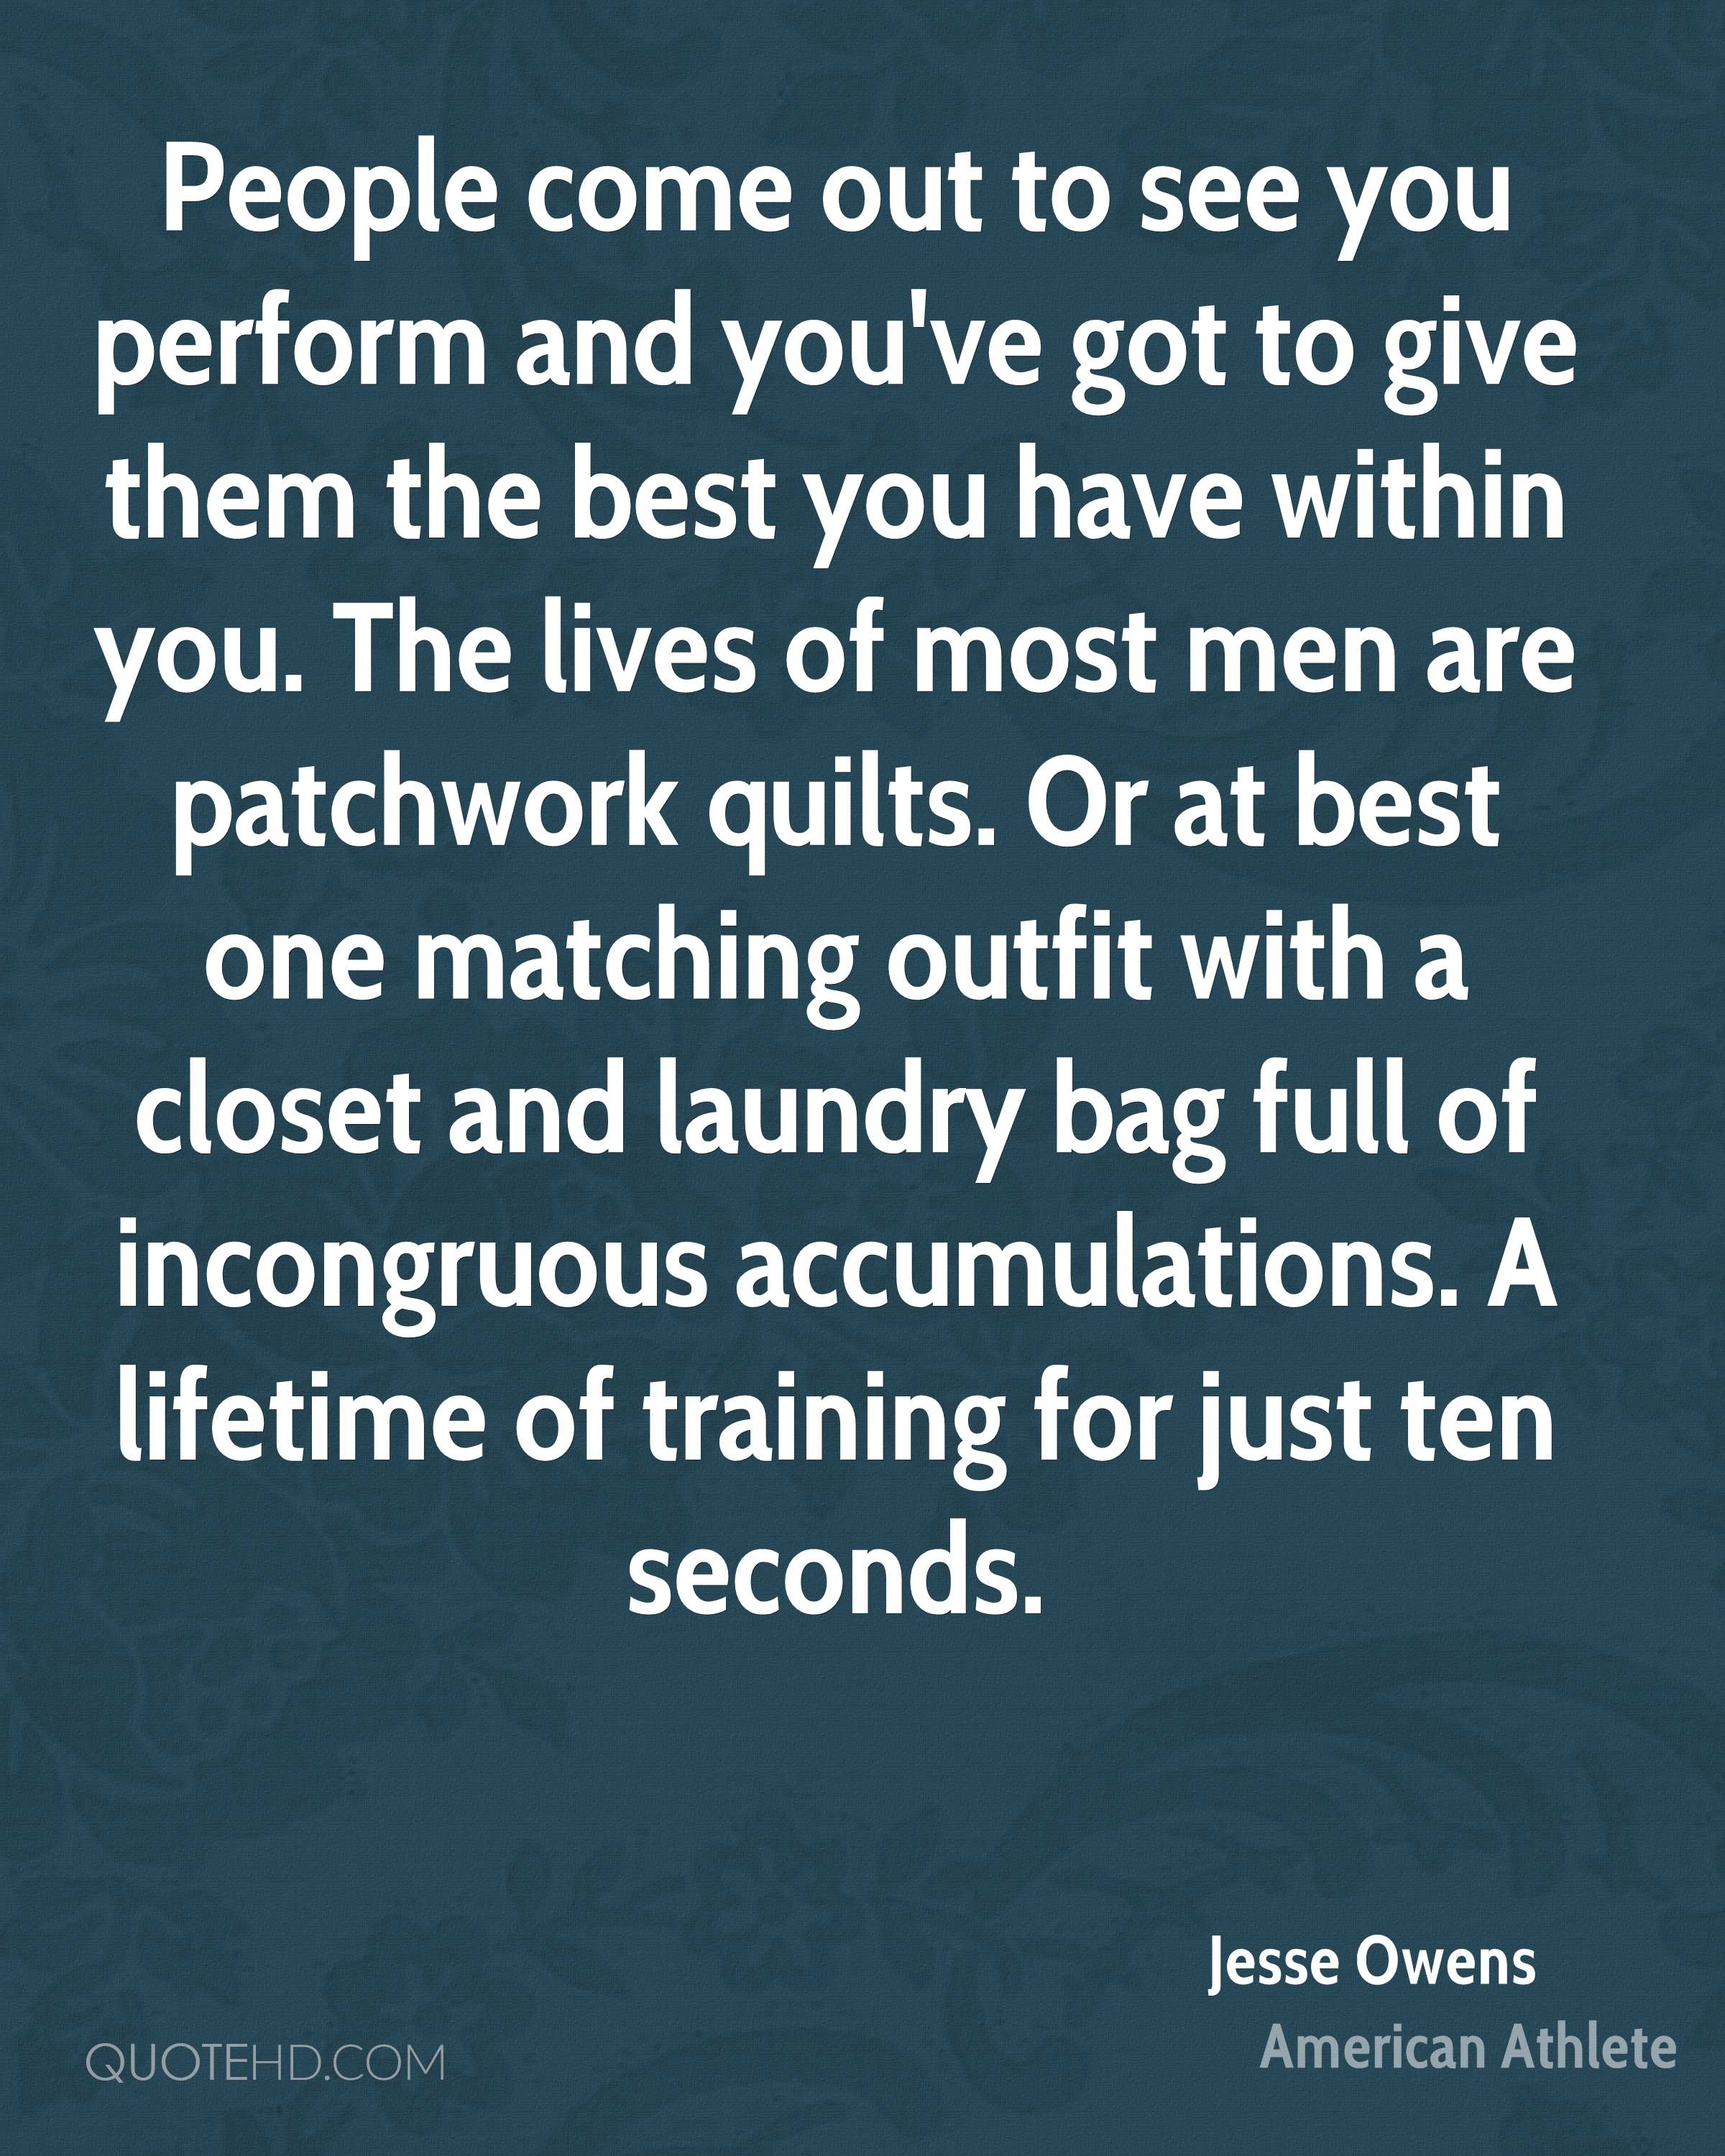 People come out to see you perform and you've got to give them the best you have within you. The lives of most men are patchwork quilts. Or at best one matching outfit with a closet and laundry bag full of incongruous accumulations. A lifetime of training for just ten seconds.